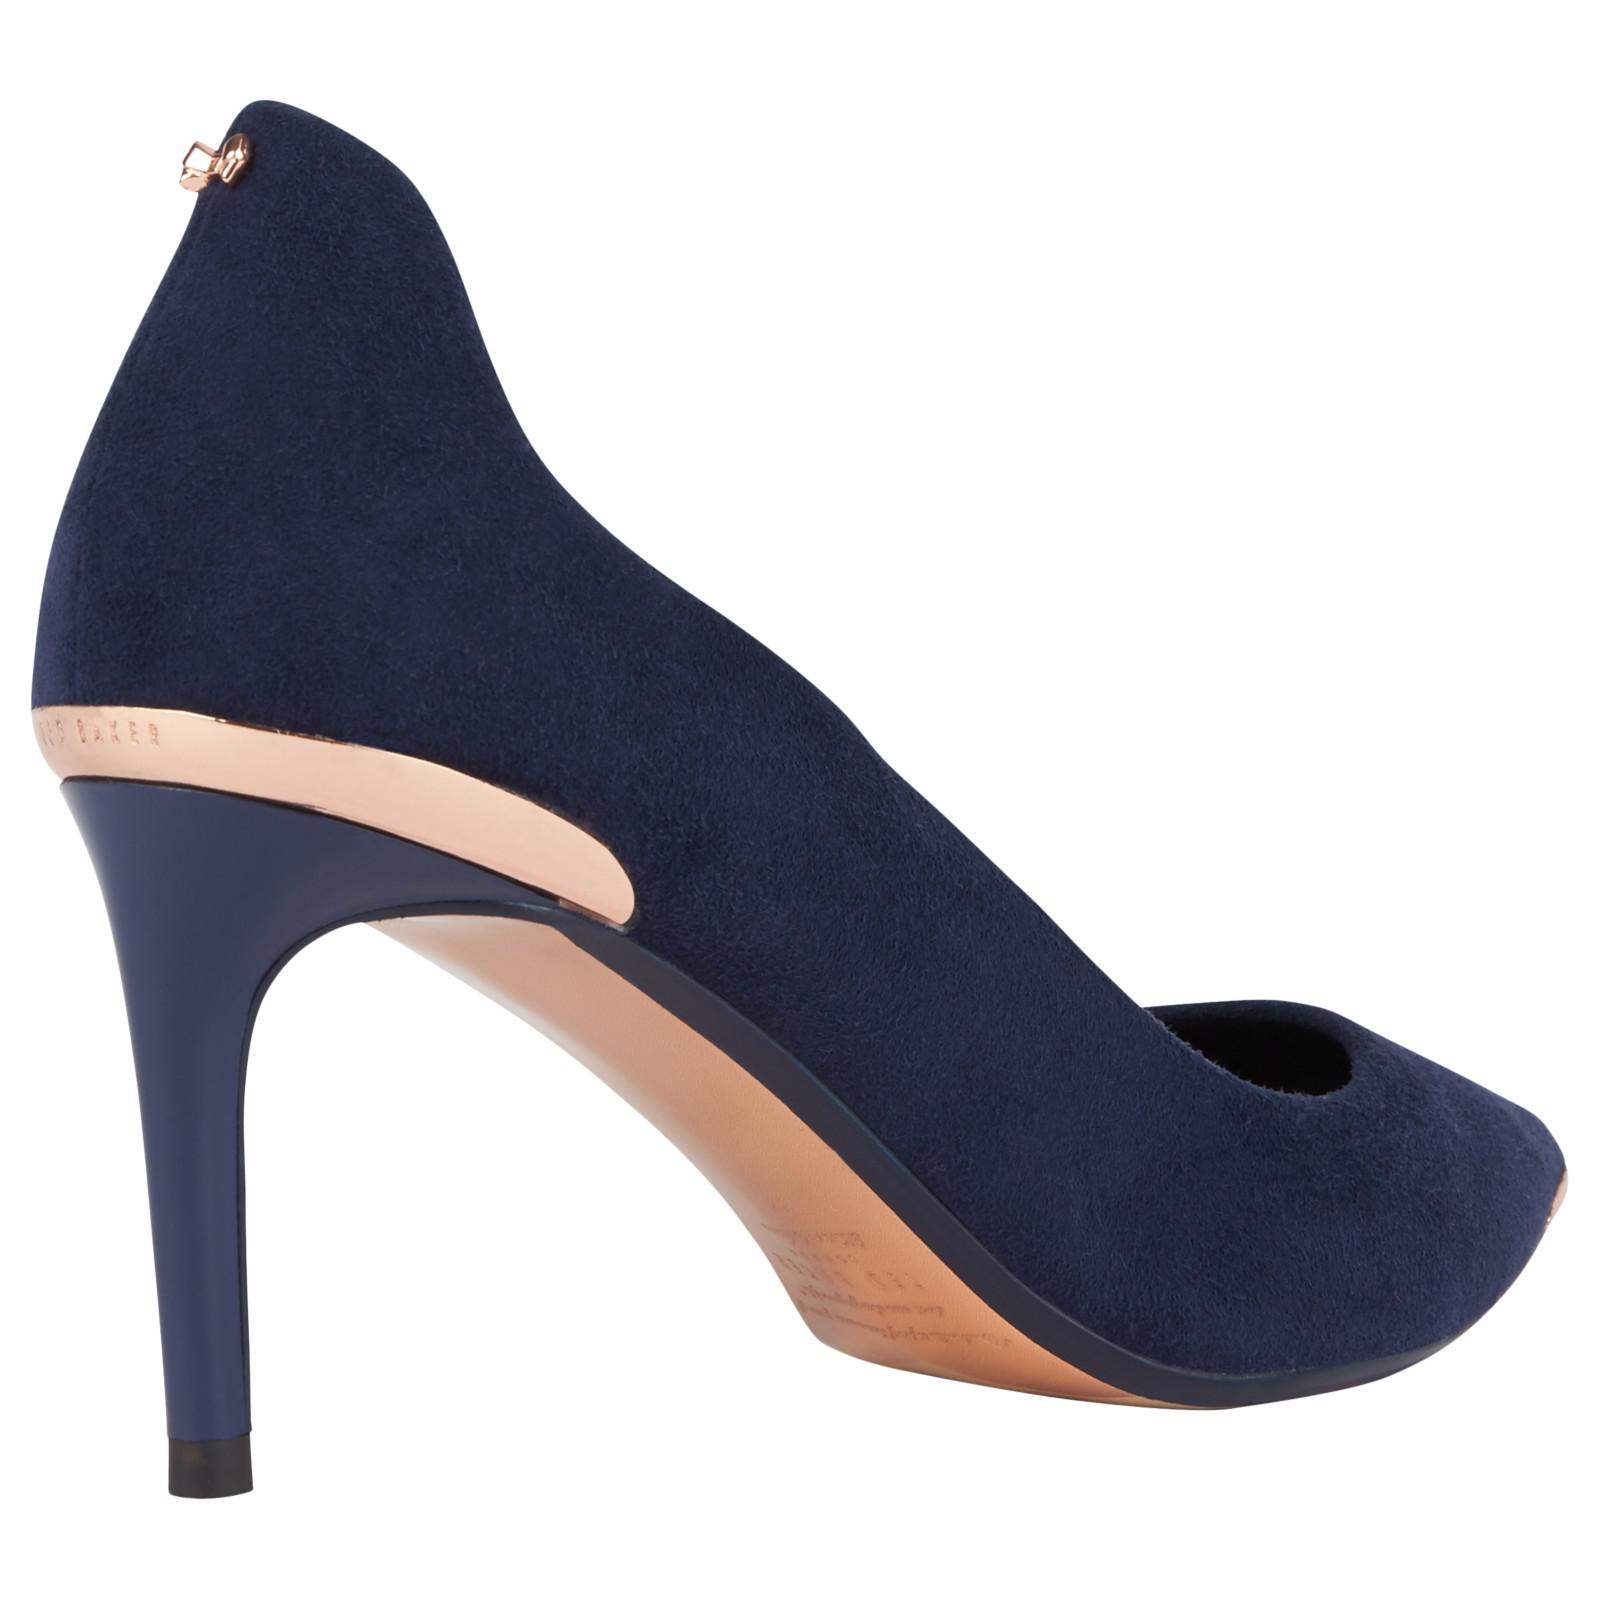 2674f367e56a44 Lyst - Ted Baker Vyixin Expressive Pansy Court Shoes in Blue